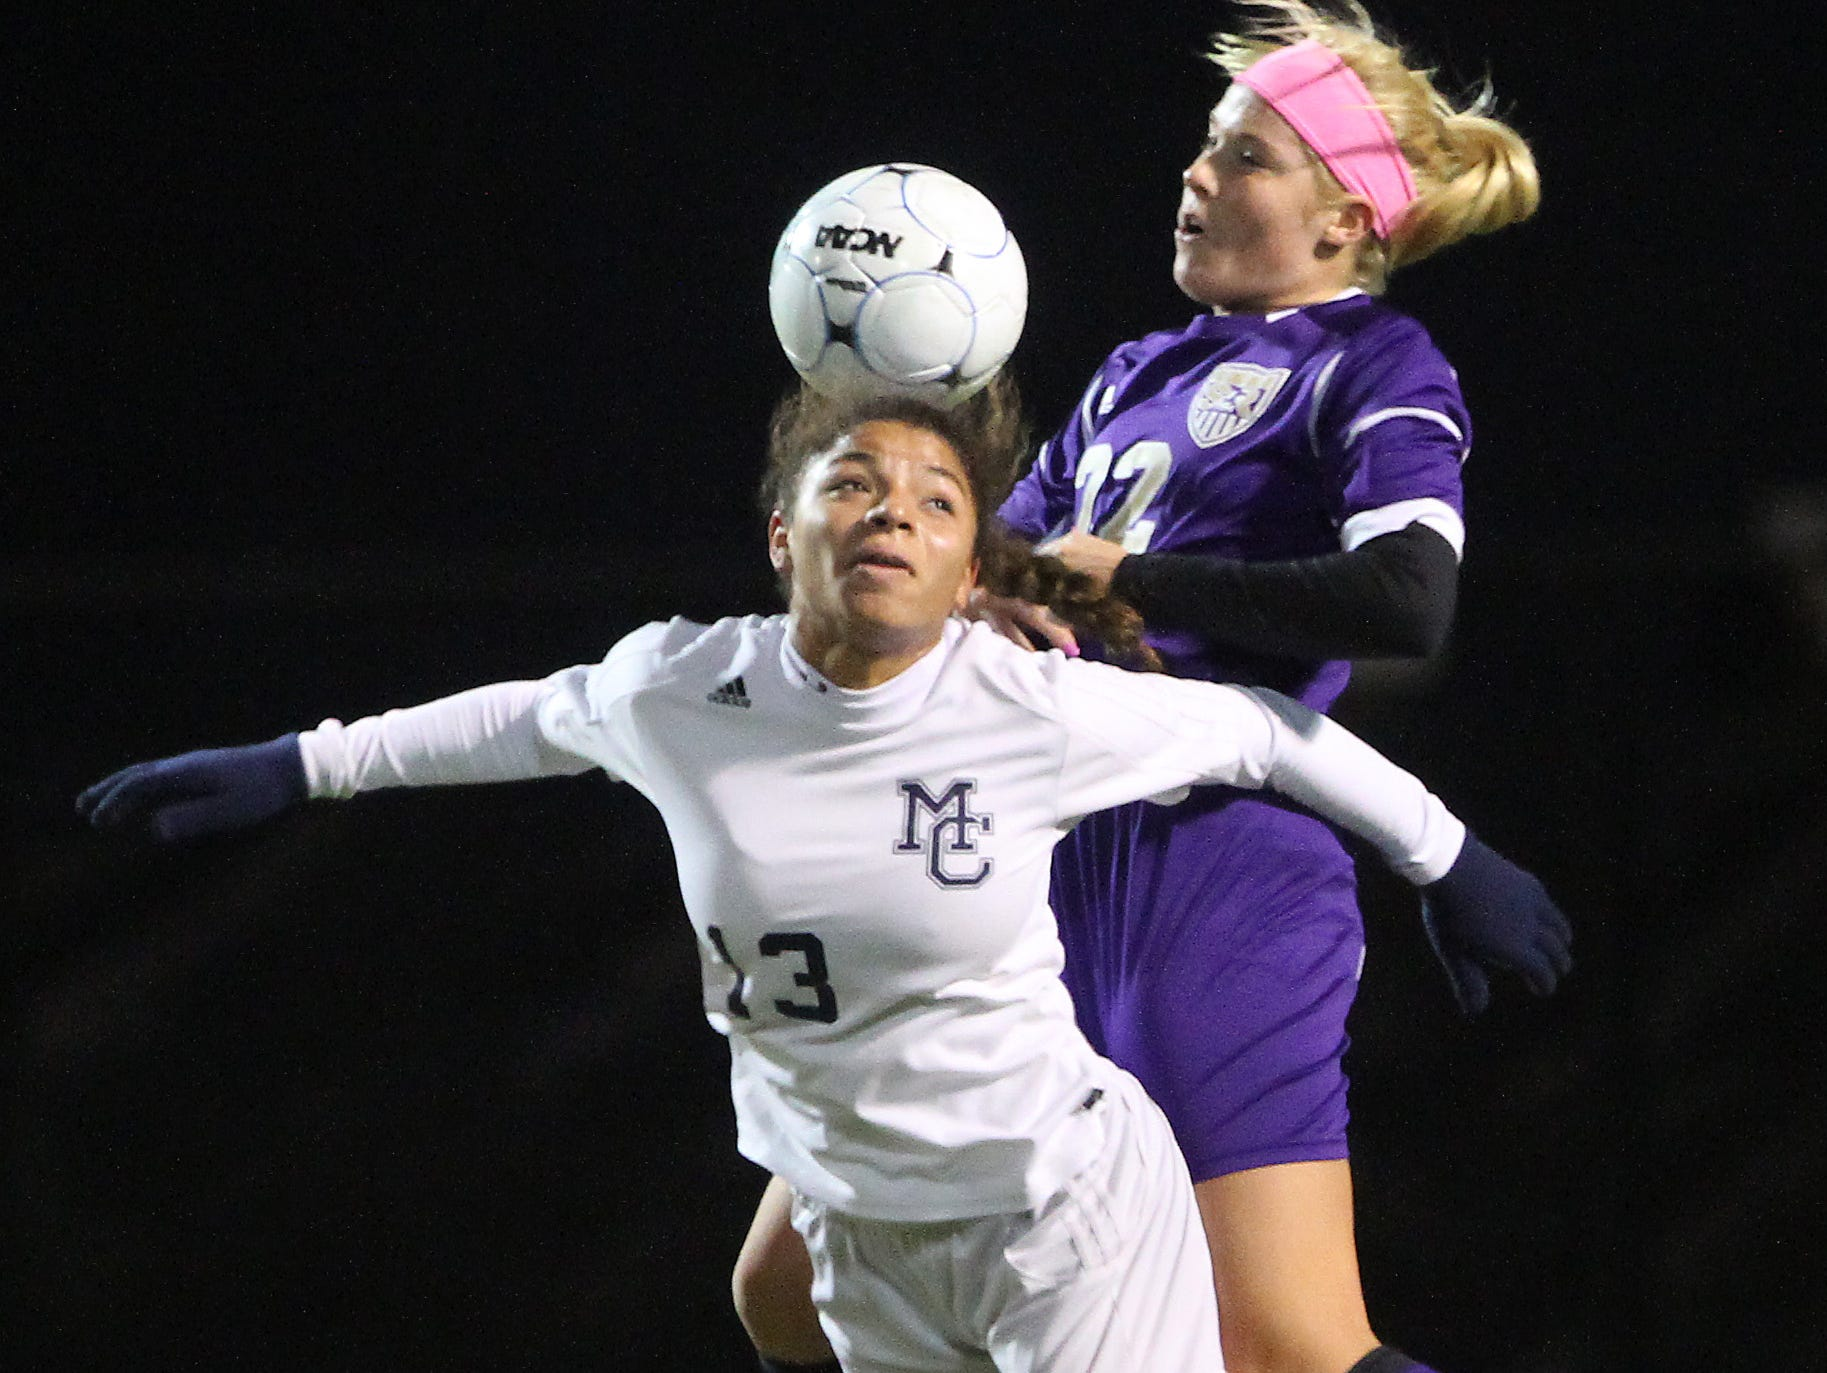 Morris Catholic's Rachel Mills goes for a header in a game against St. Rose in 2013.